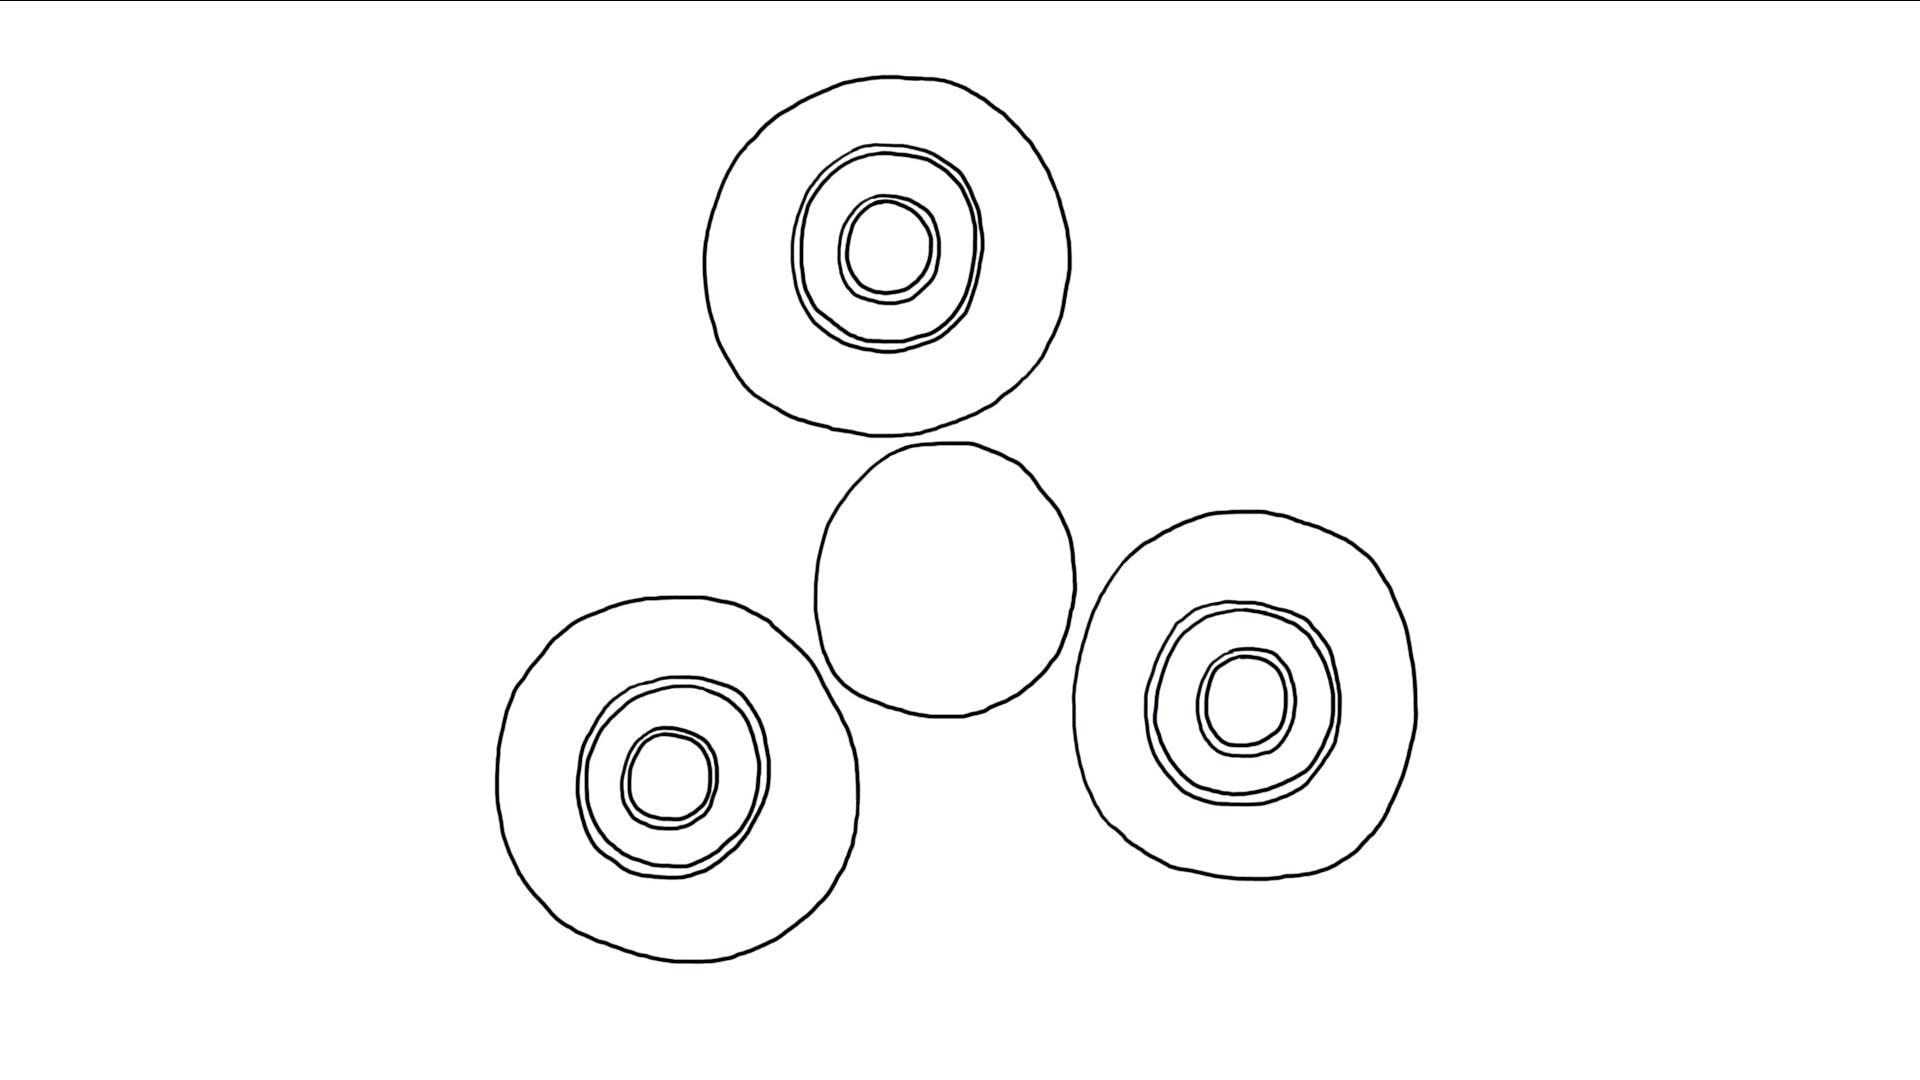 more fidget spinner development